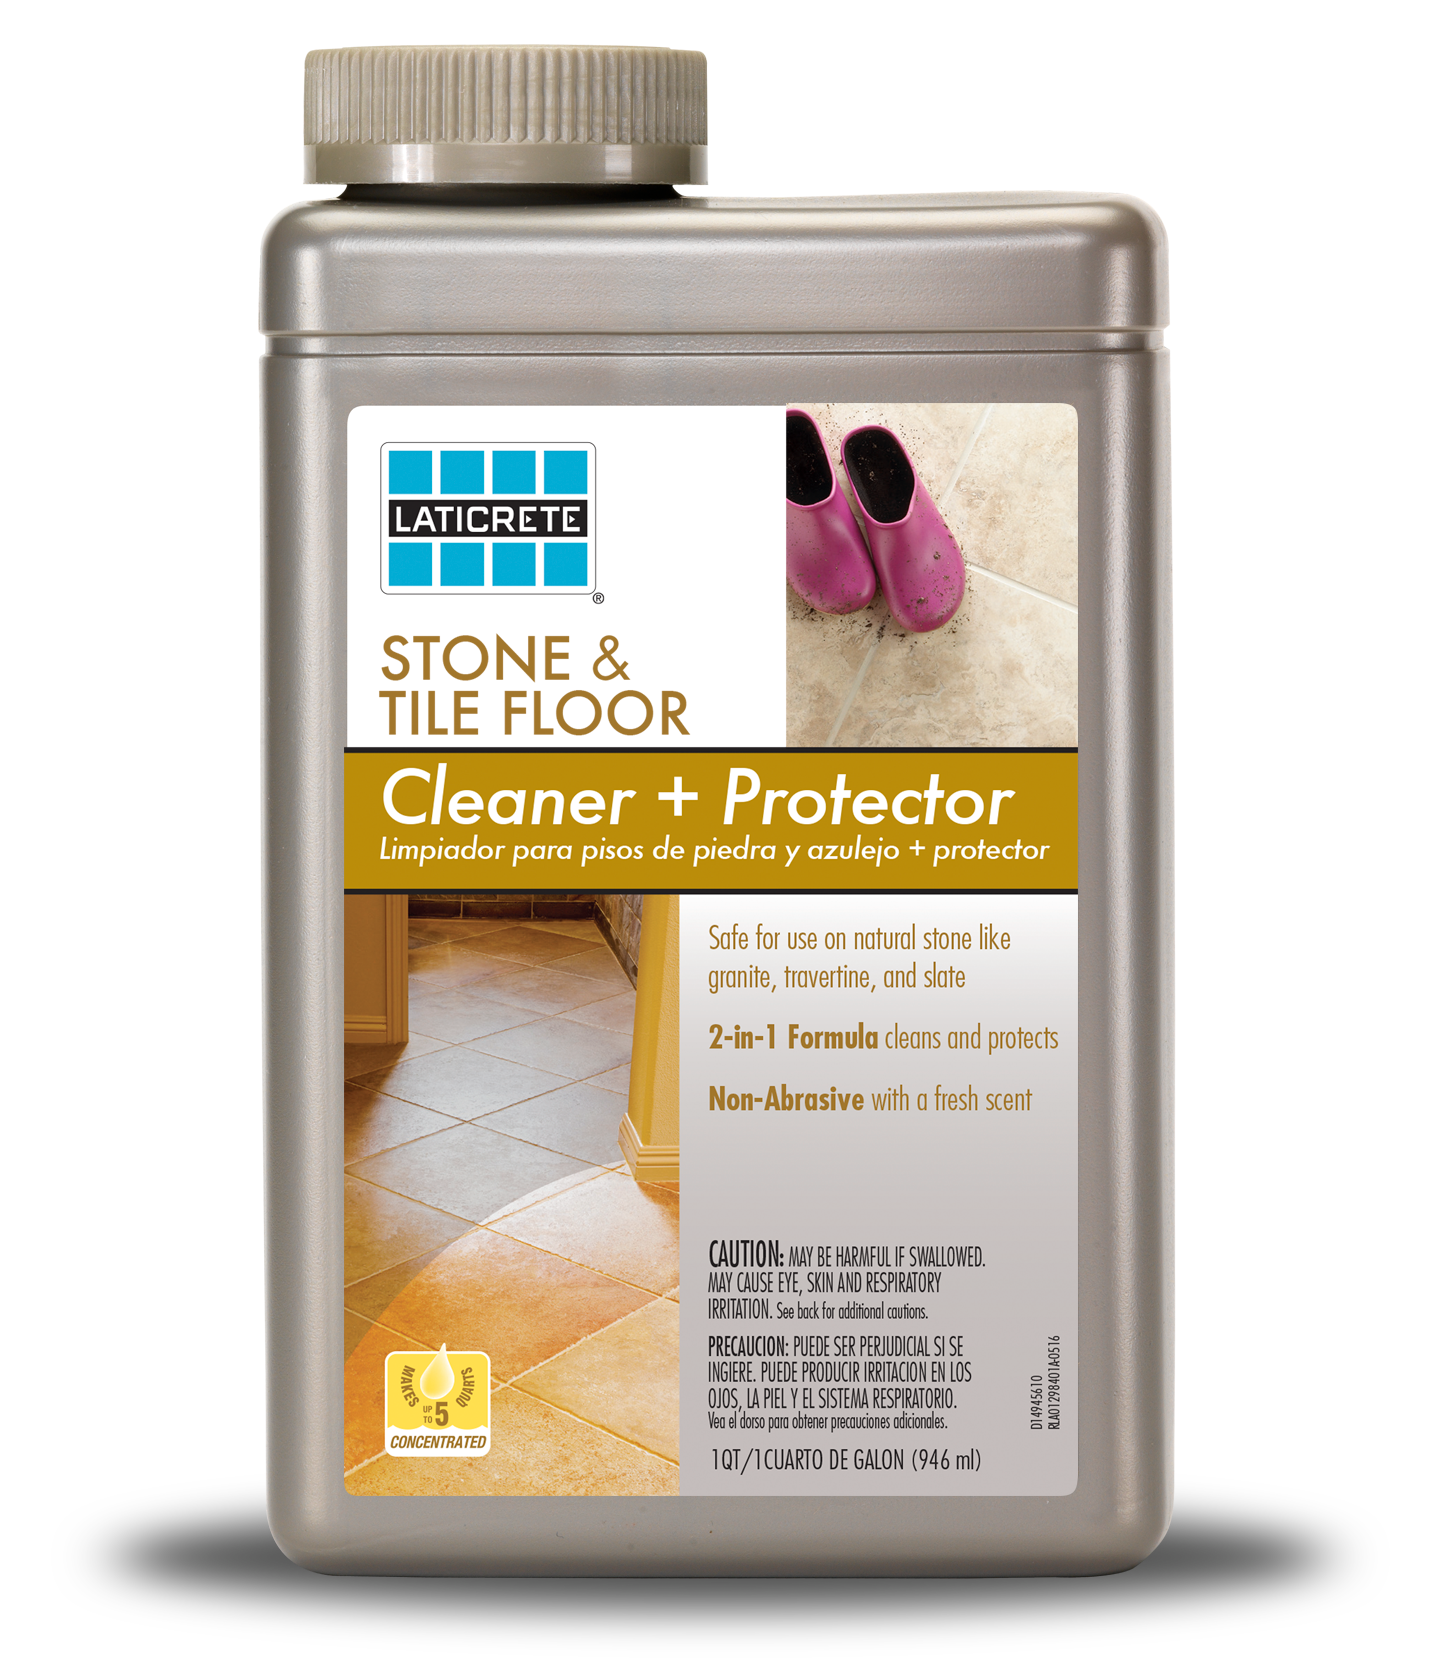 LATICRETE® Stone & Tile Floor Cleaner & Protector